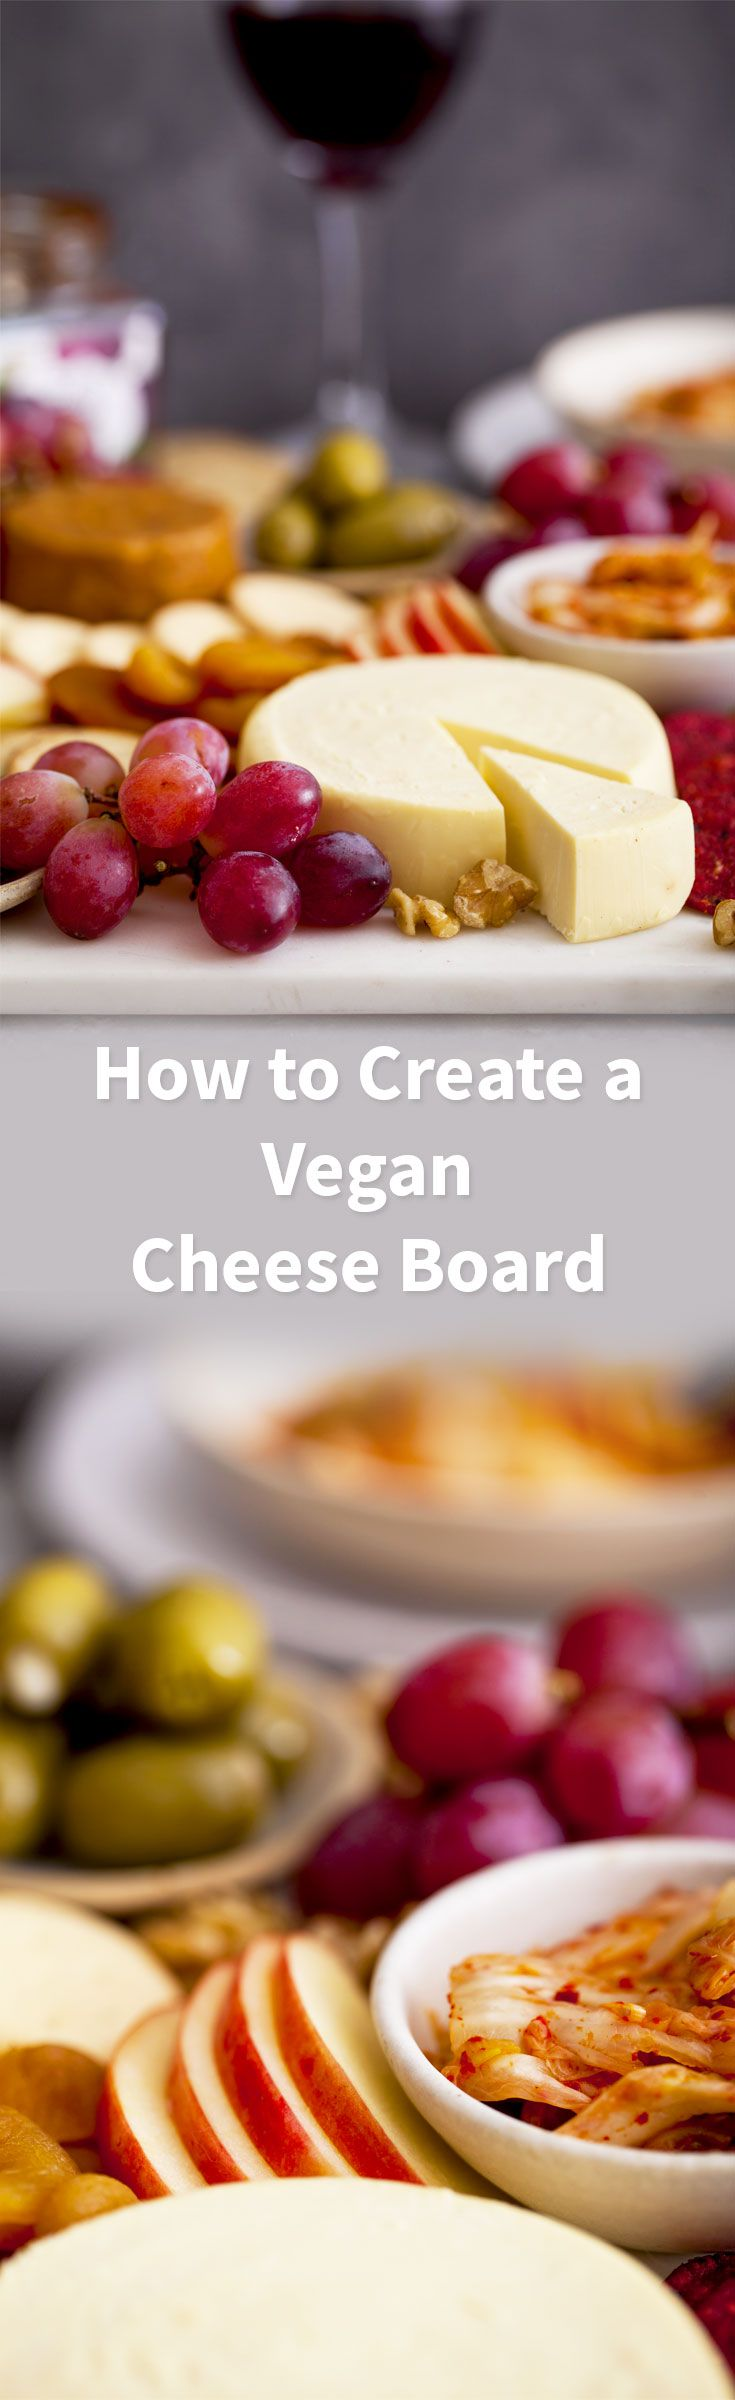 How to Make a Vegan Cheese Board by Goodness is Gorgeous my